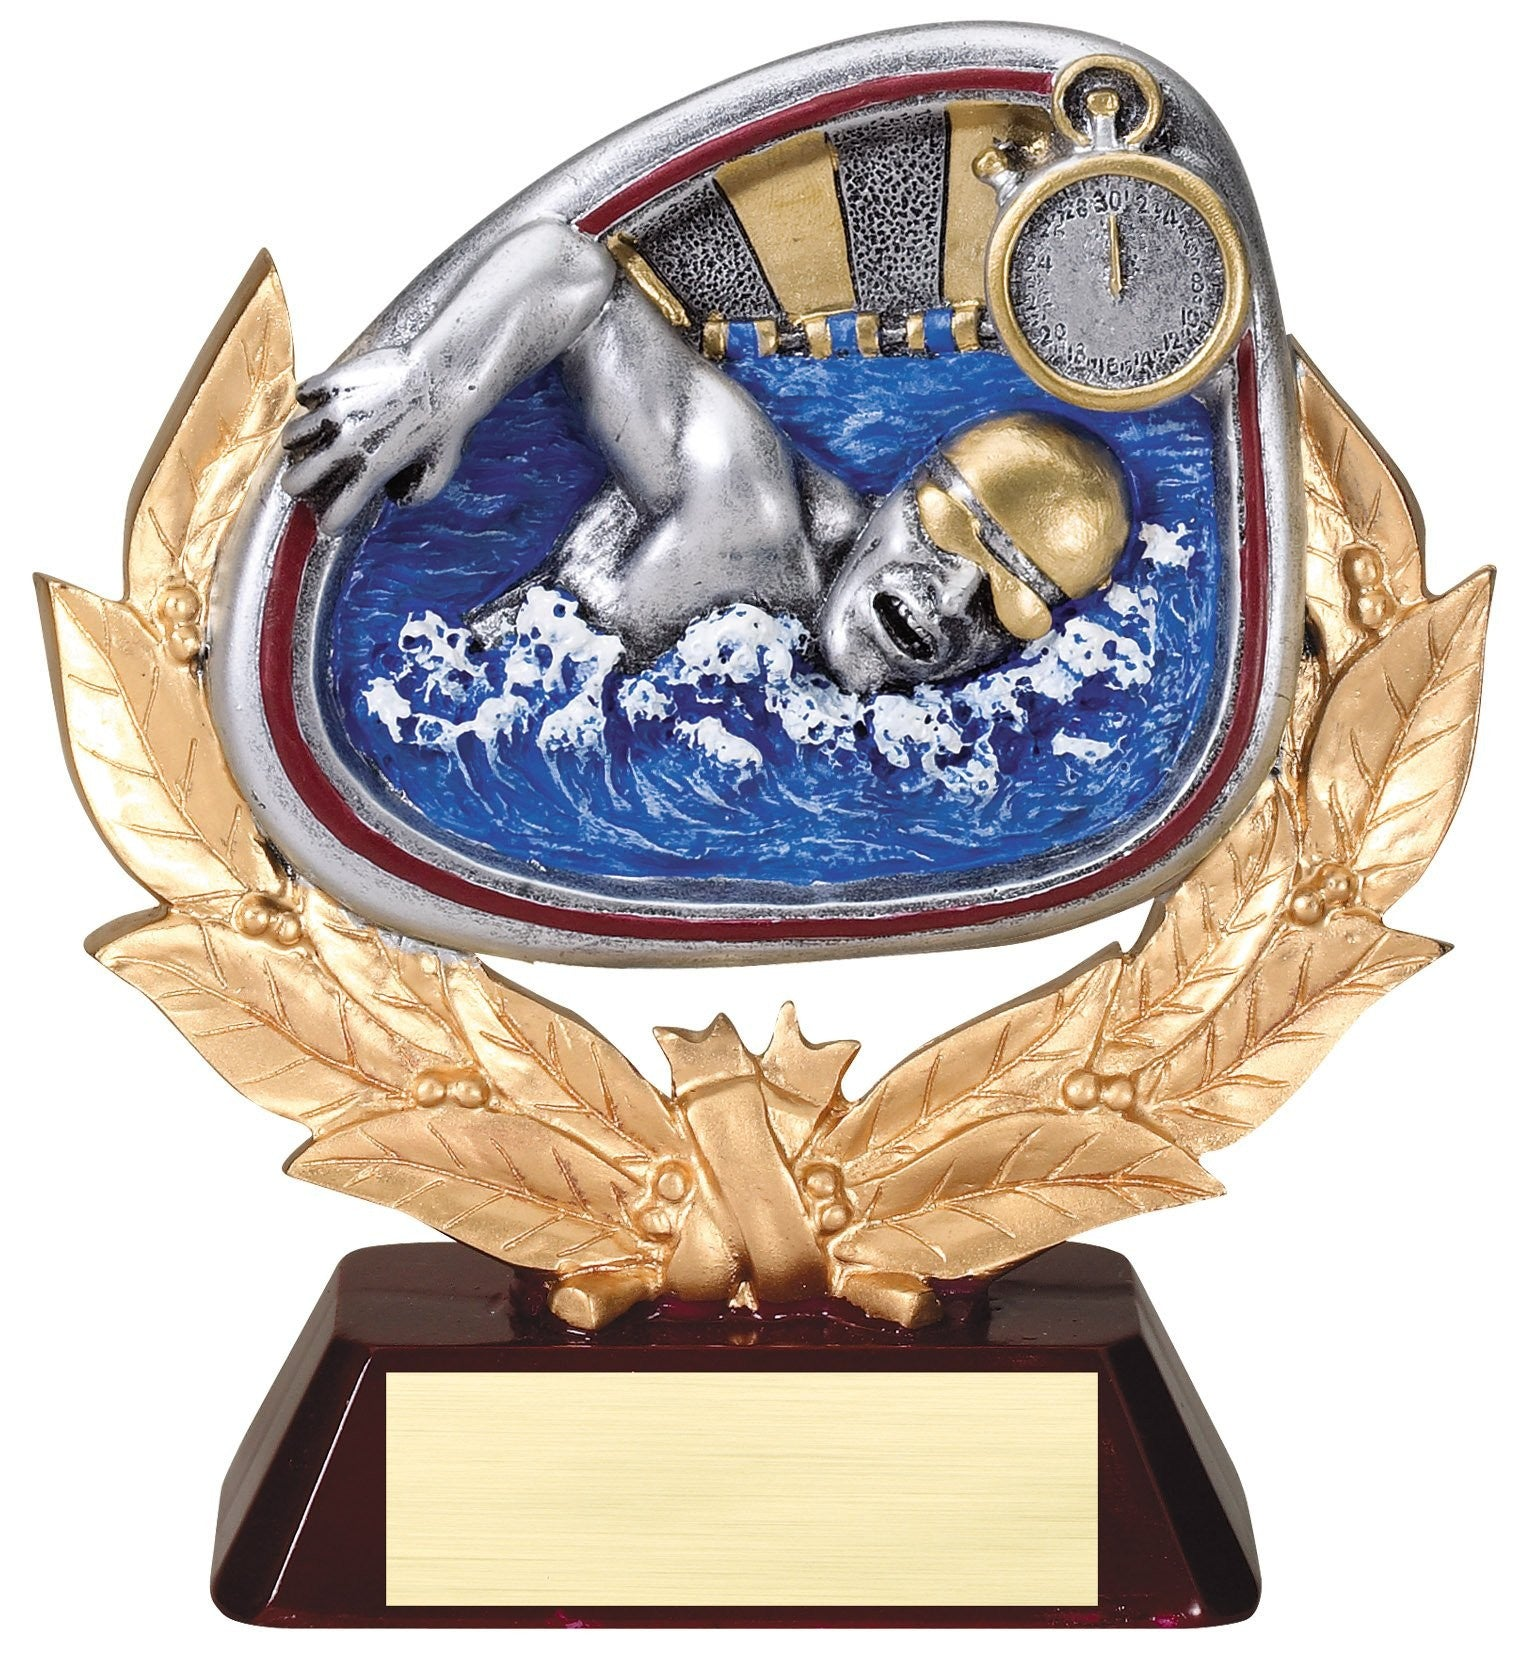 Stamford Series Swimming Award Trophy-Trophies-Schoppy's Since 1921